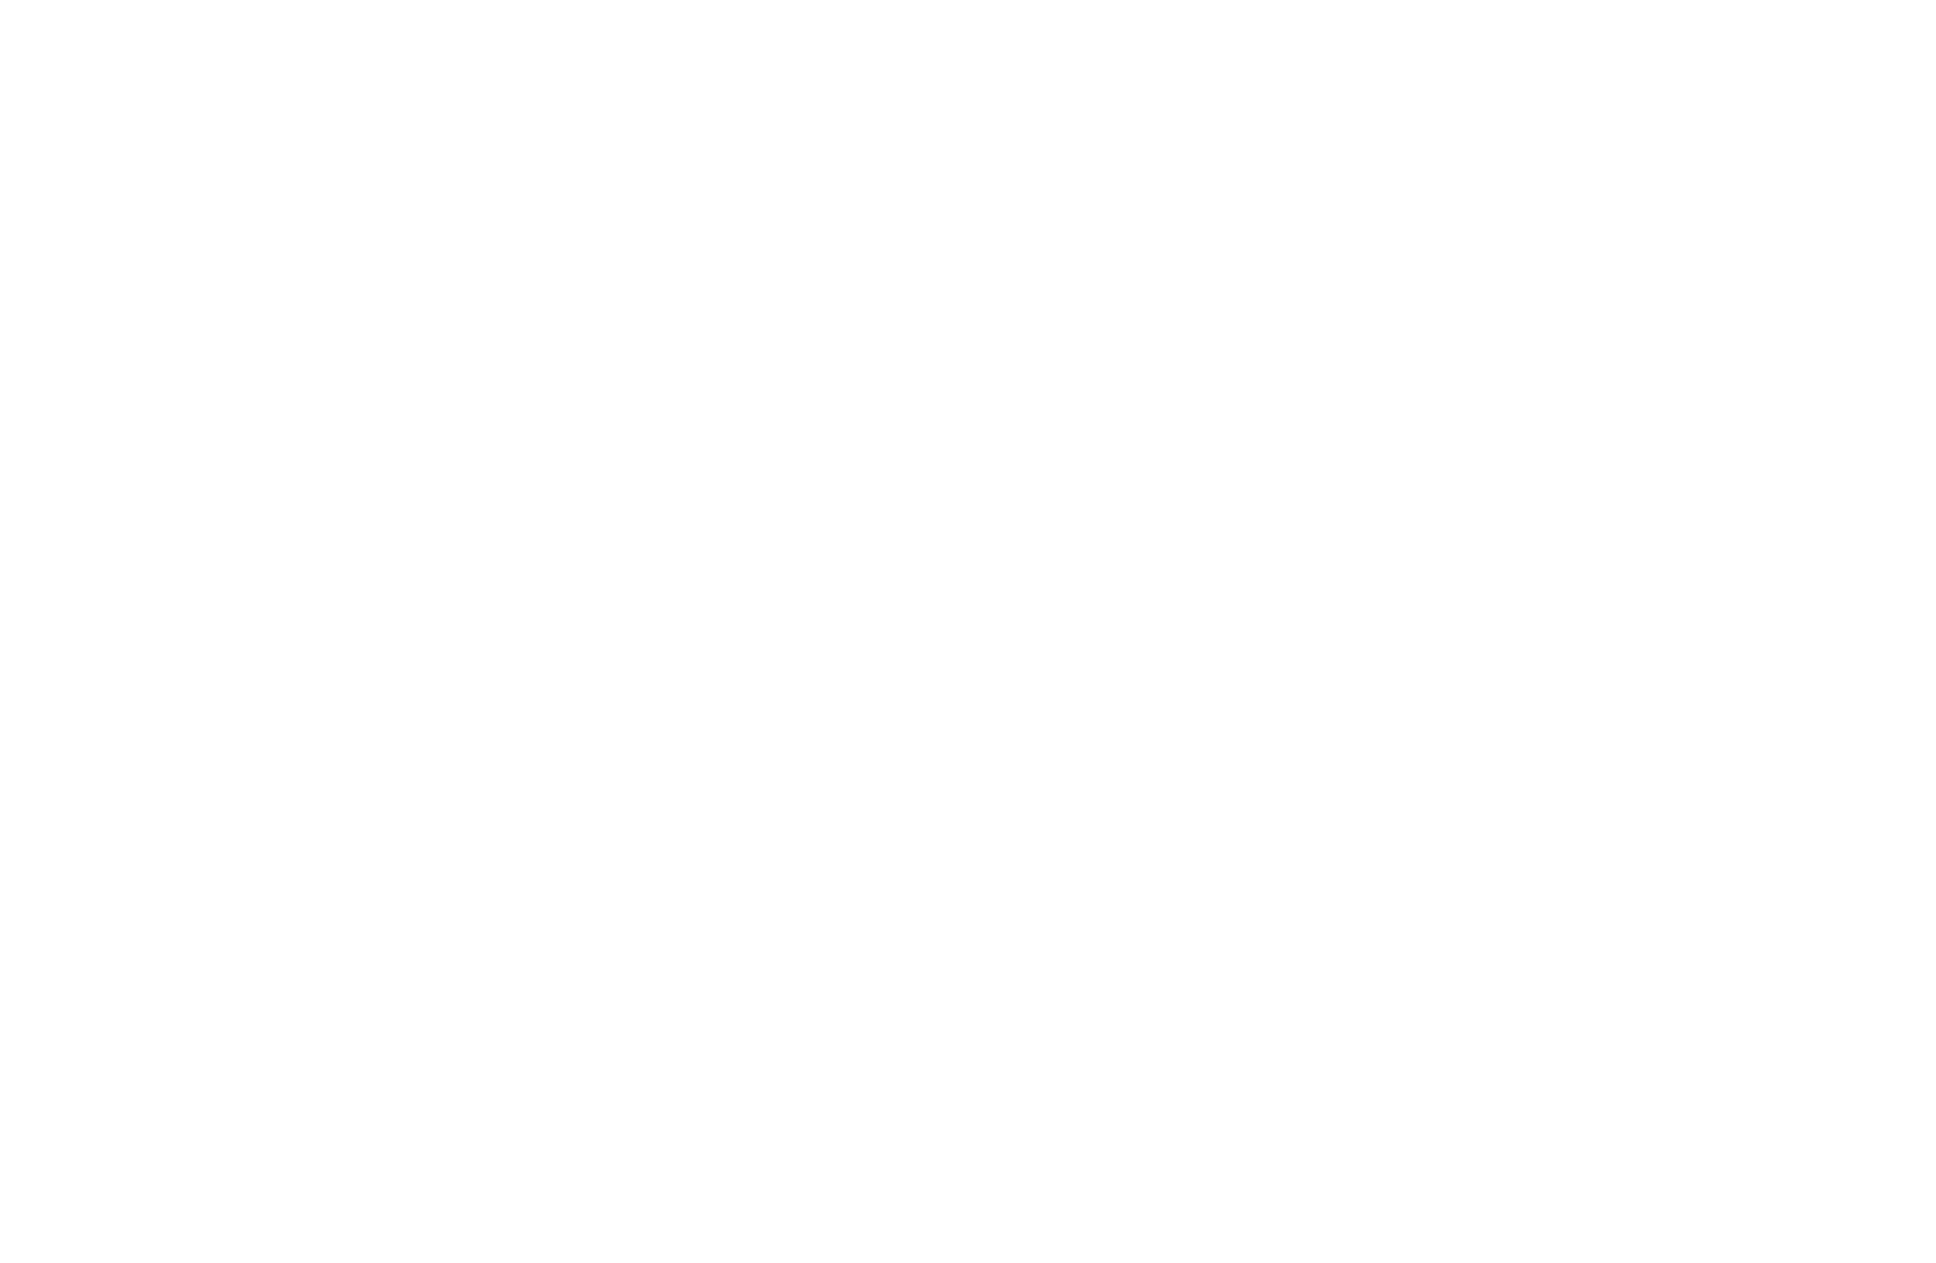 Best Episodic Summer 2018